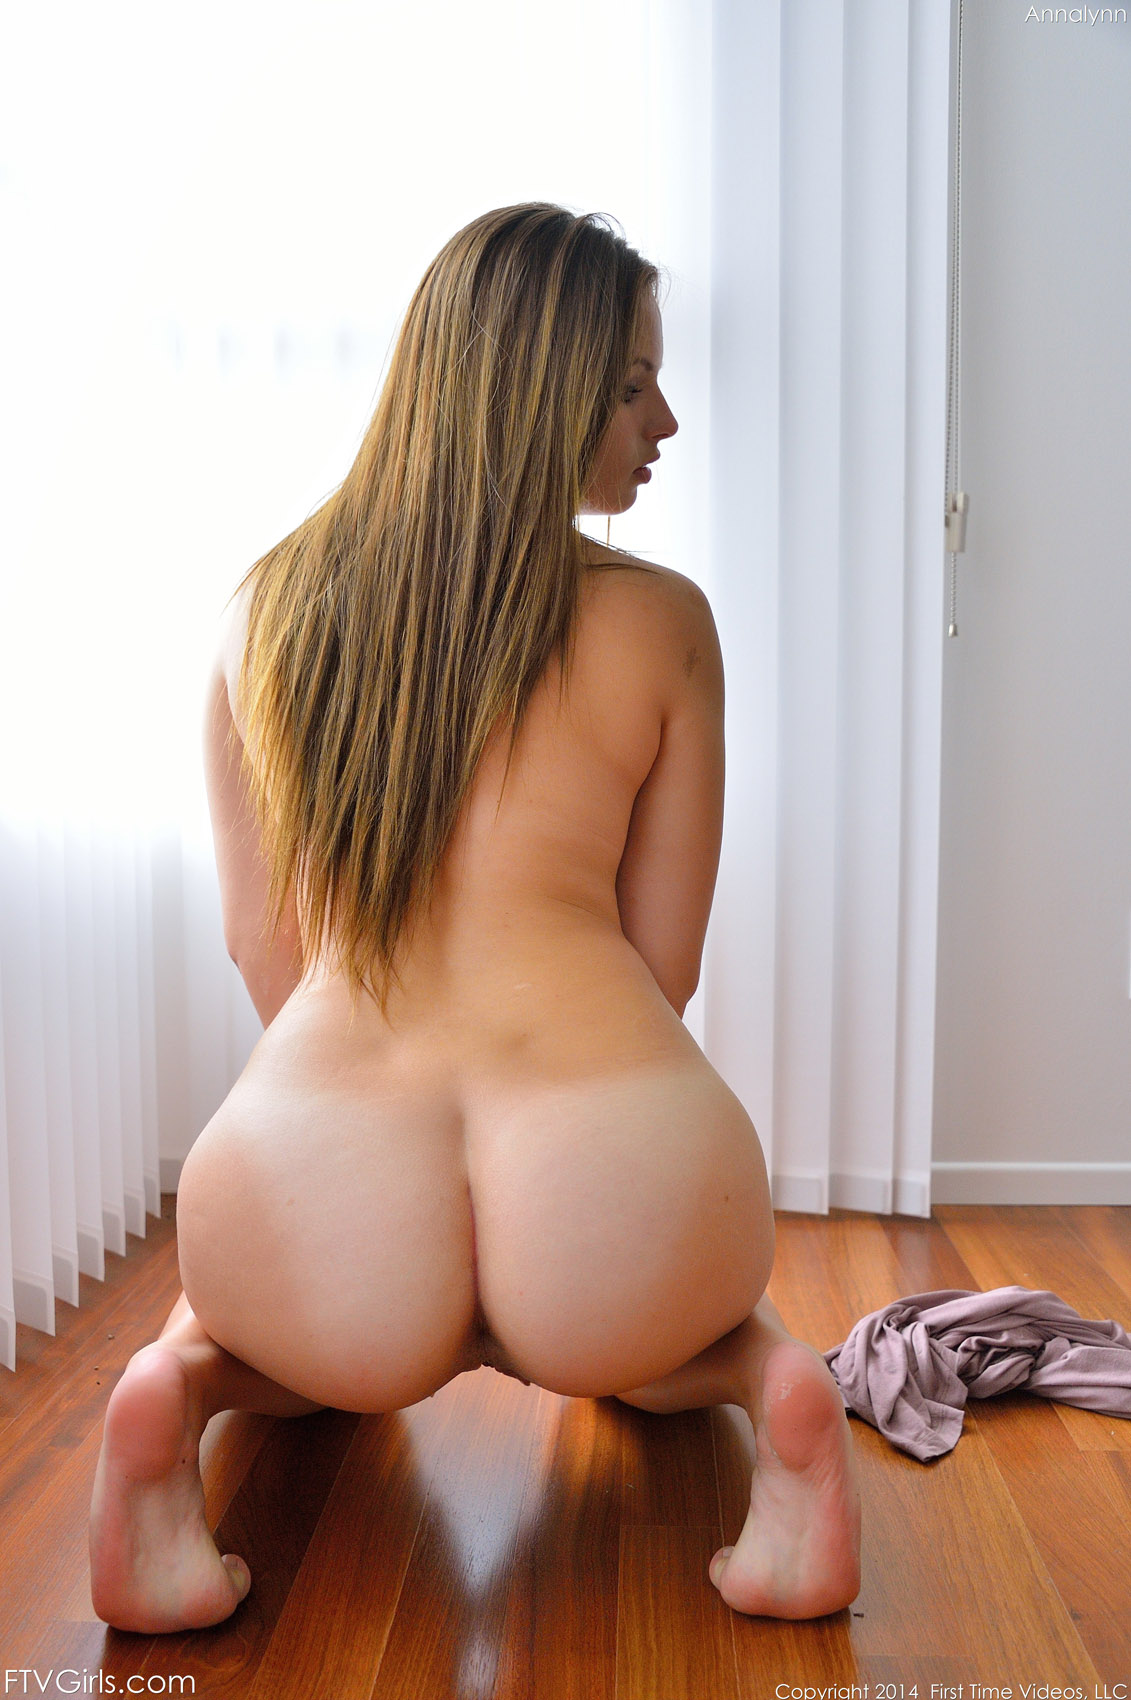 Girl nude nude female butt galleries